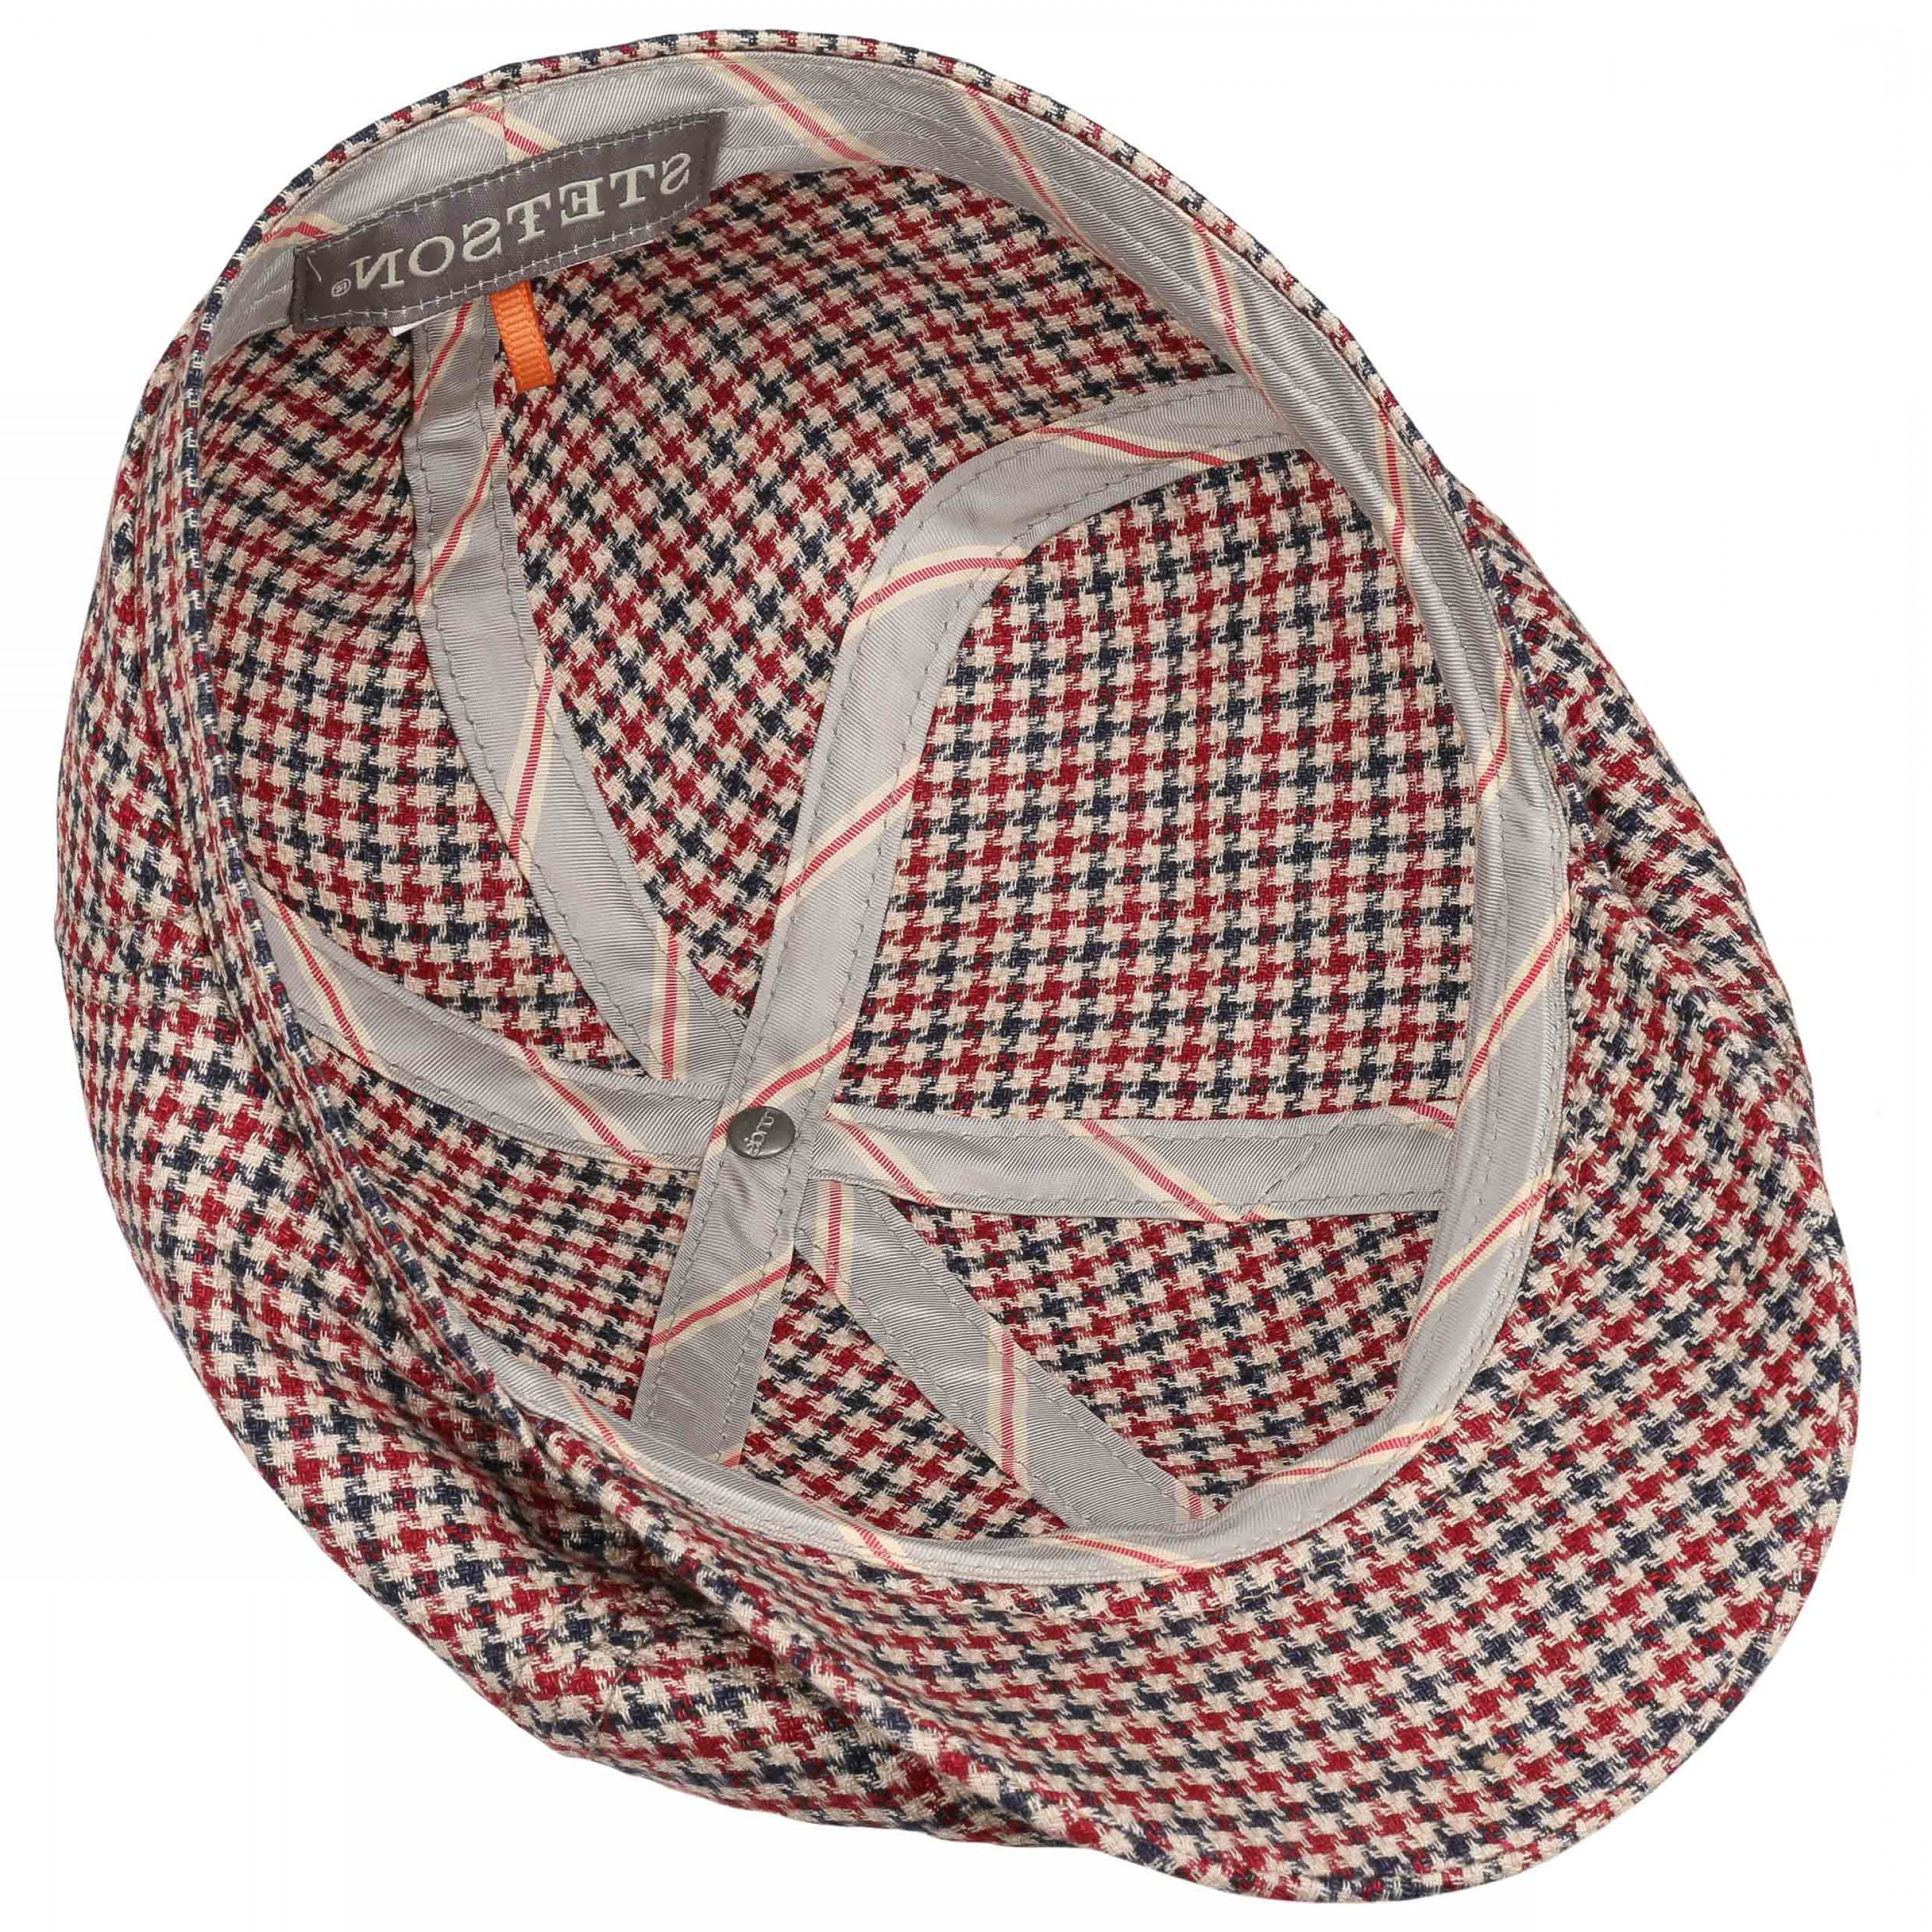 Houndstooth Hats Vector: Panel Houndstooth Flat Cap By Stetson